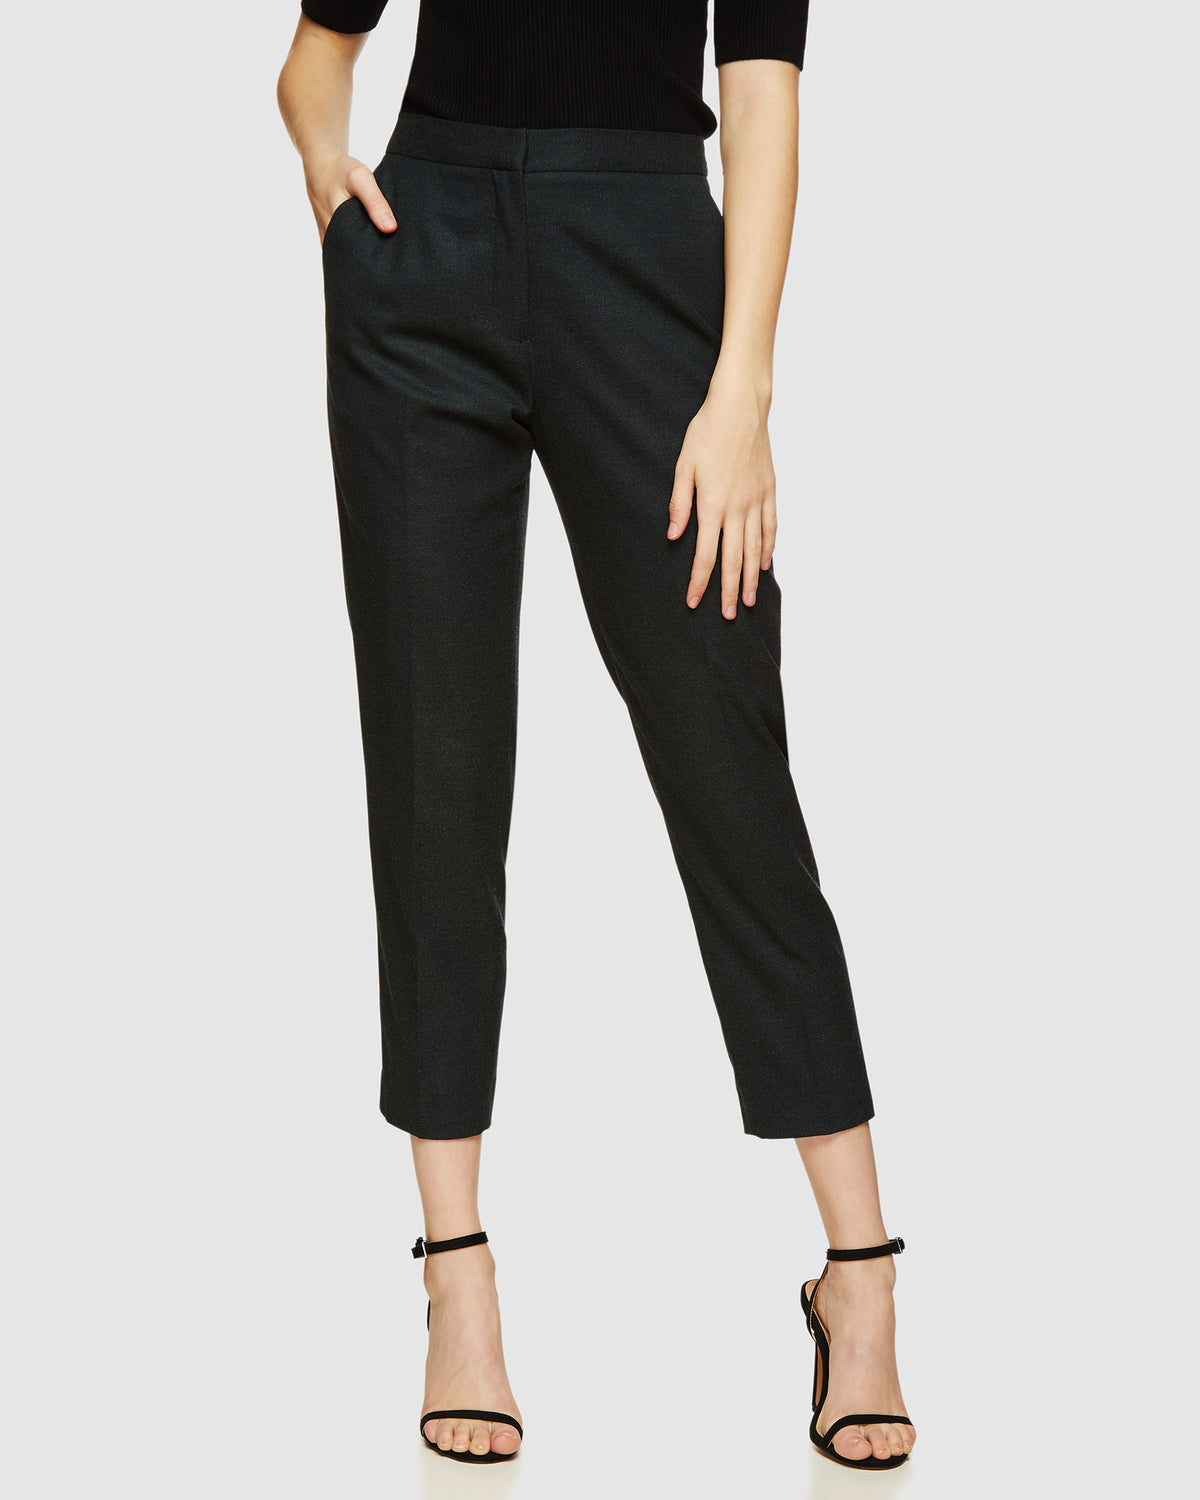 CHARLA ECO SUIT TROUSERS